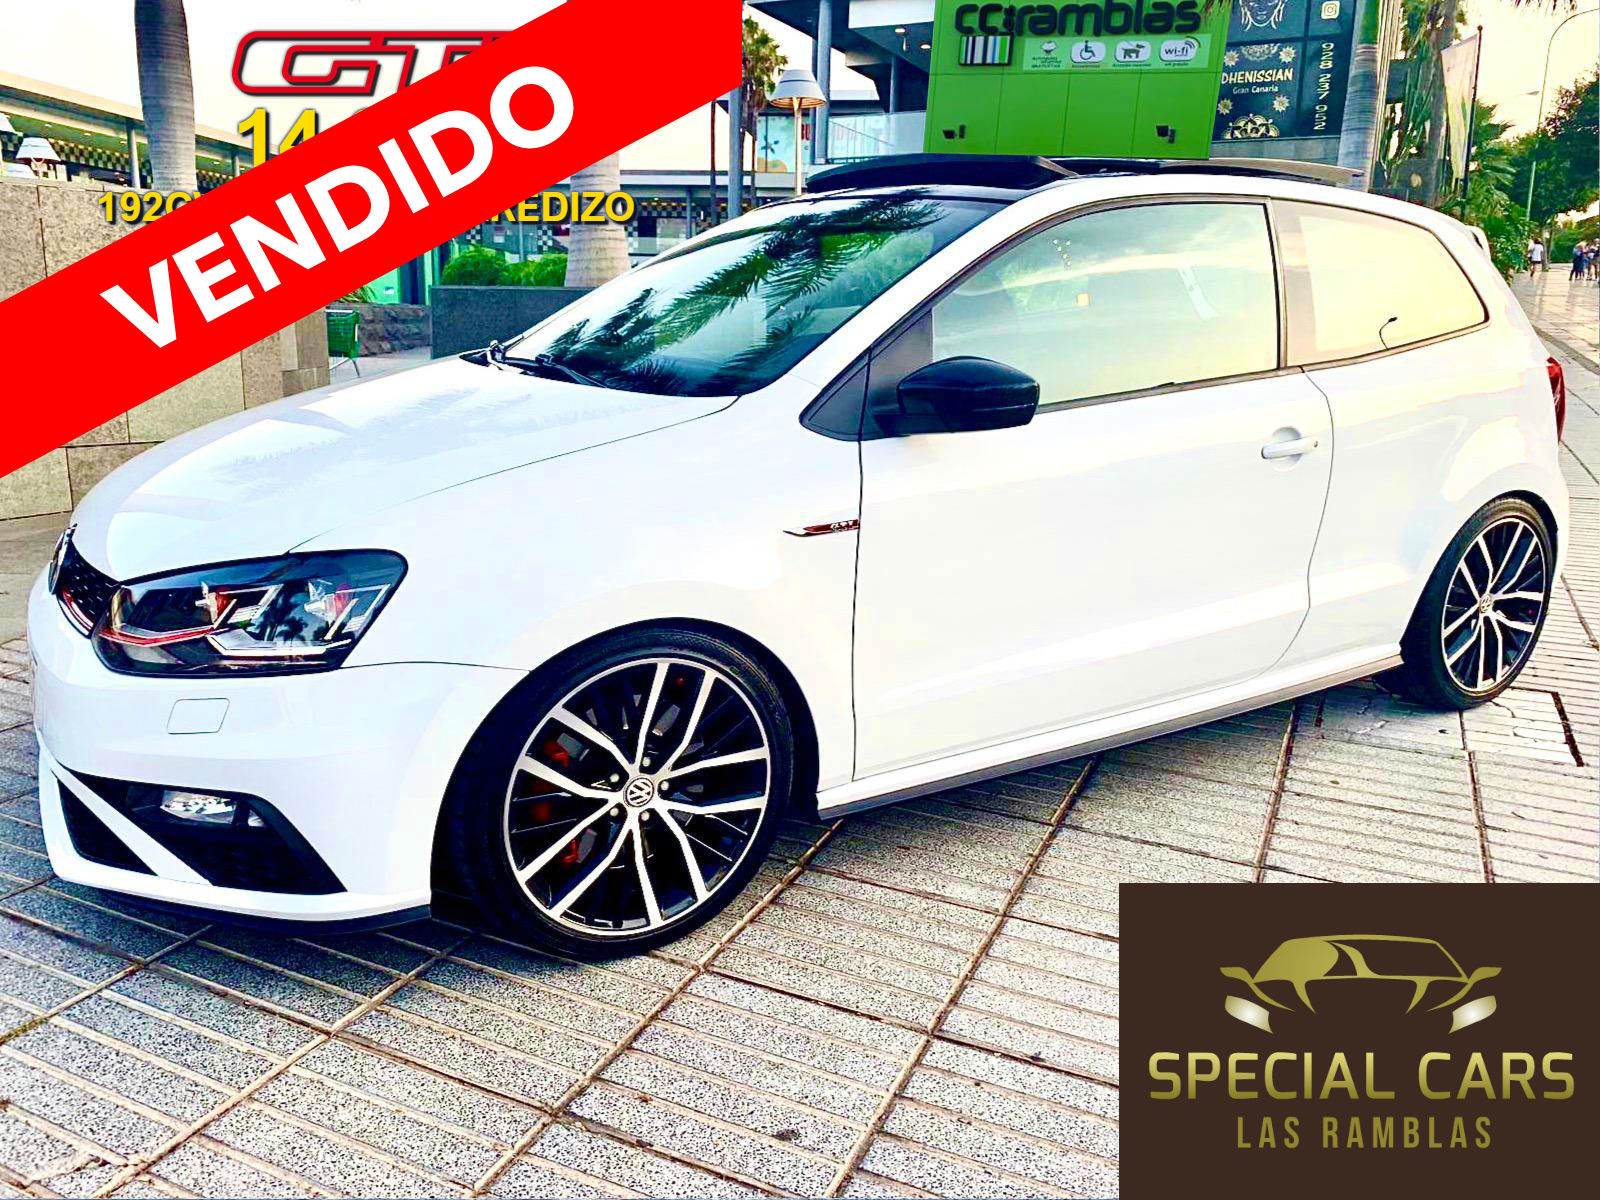 POLO GTI 1.9TSI 190 CV 2015 SEP19 (1) VENDIDO